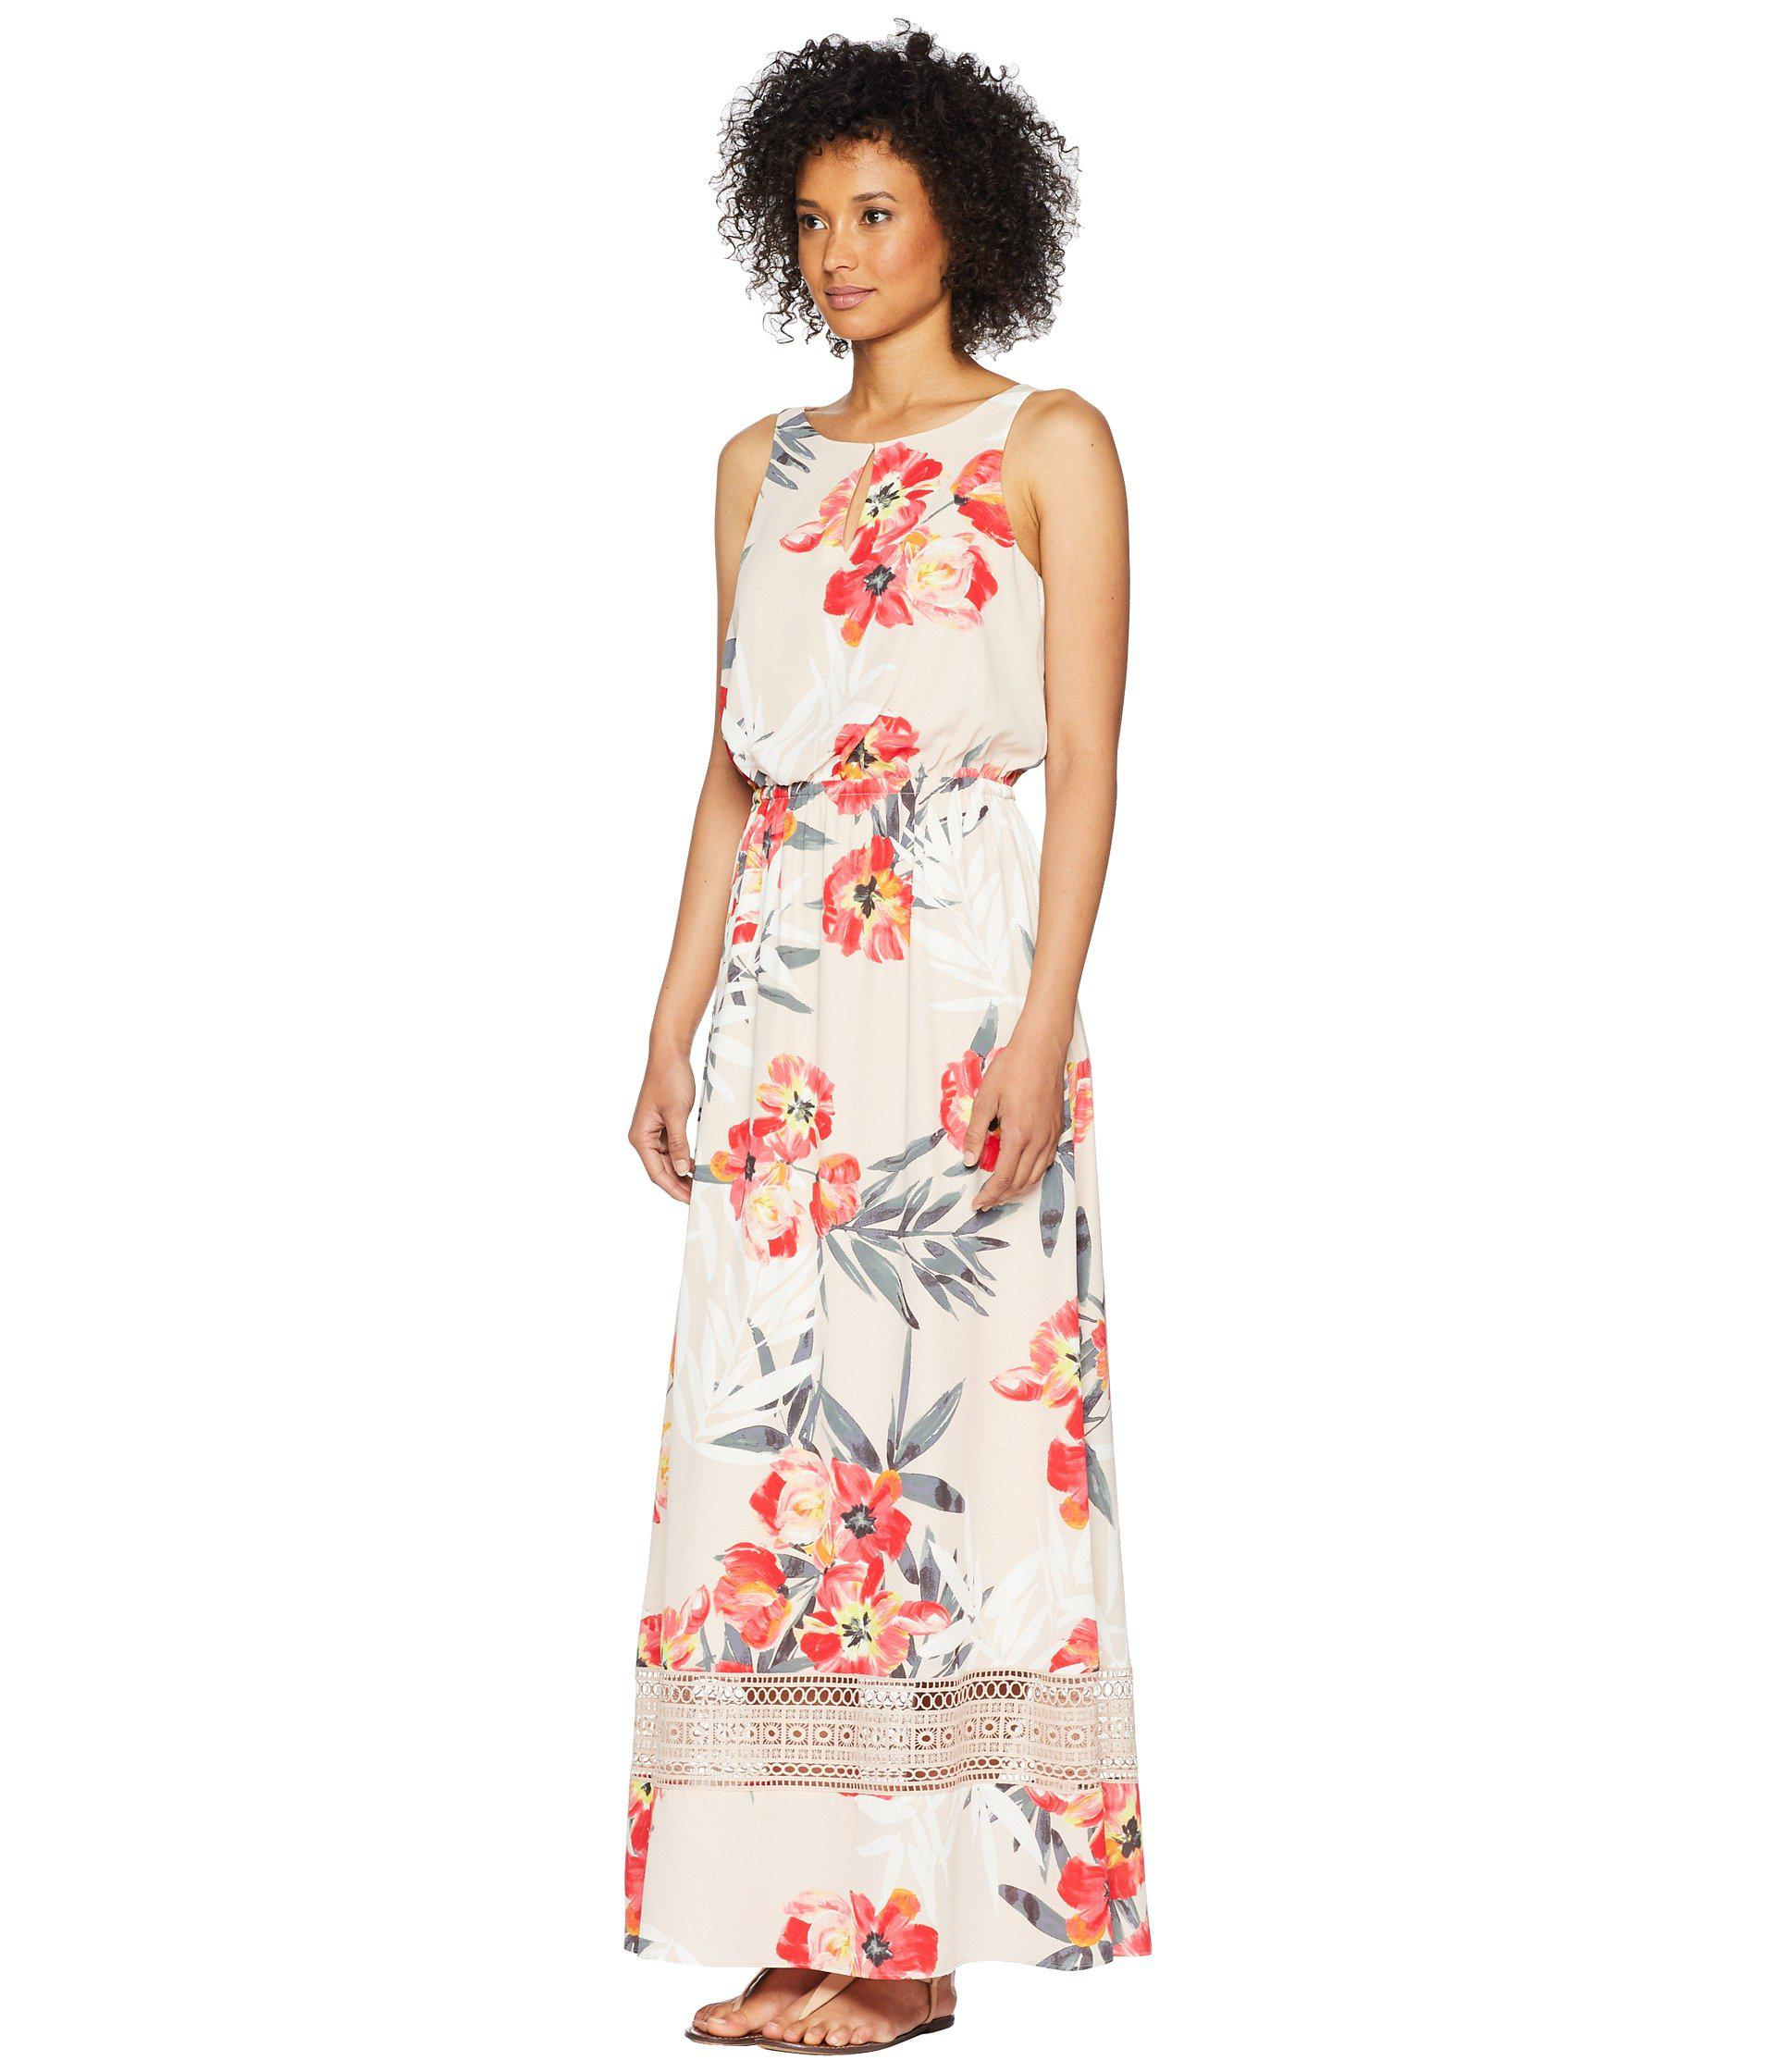 482abbcb778 Lyst - Adrianna Papell Tropical Breeze Maxi Dress - Save 35%